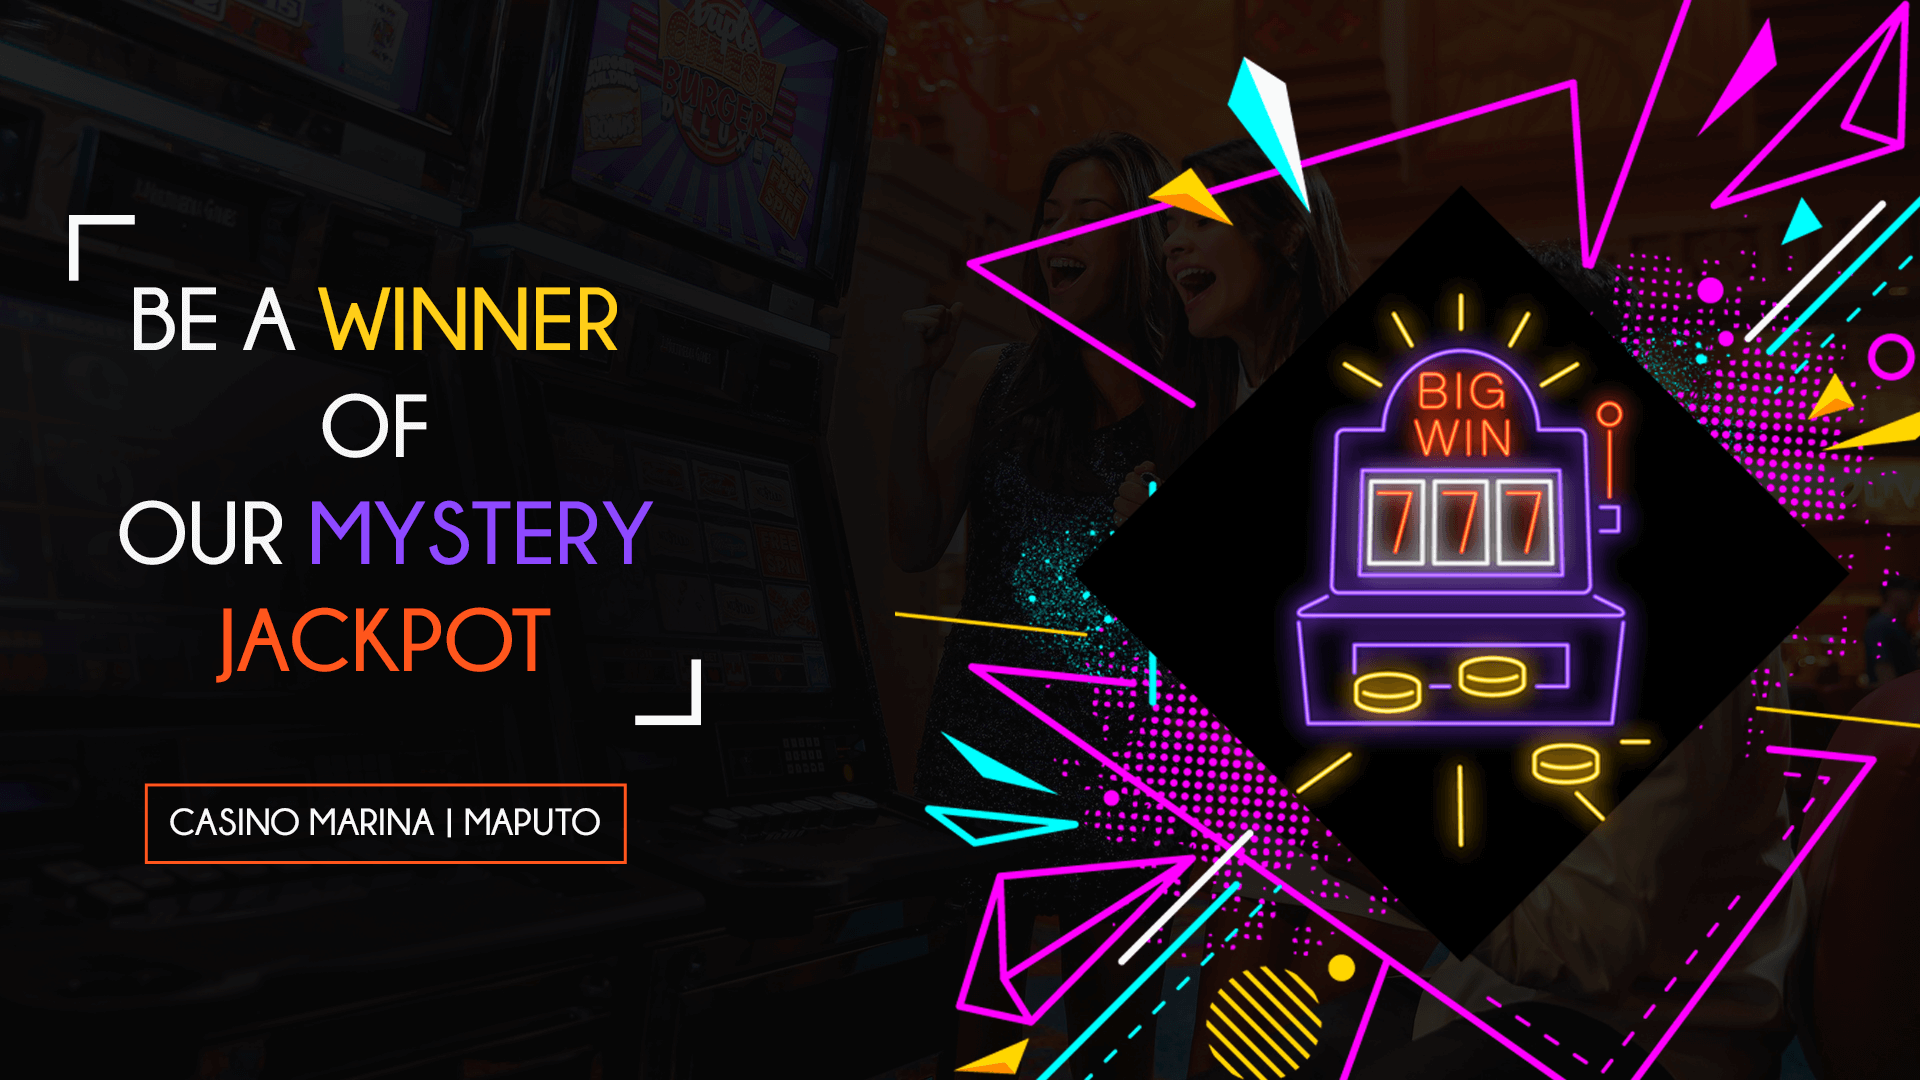 Be a winner of our Mystery Jackpots